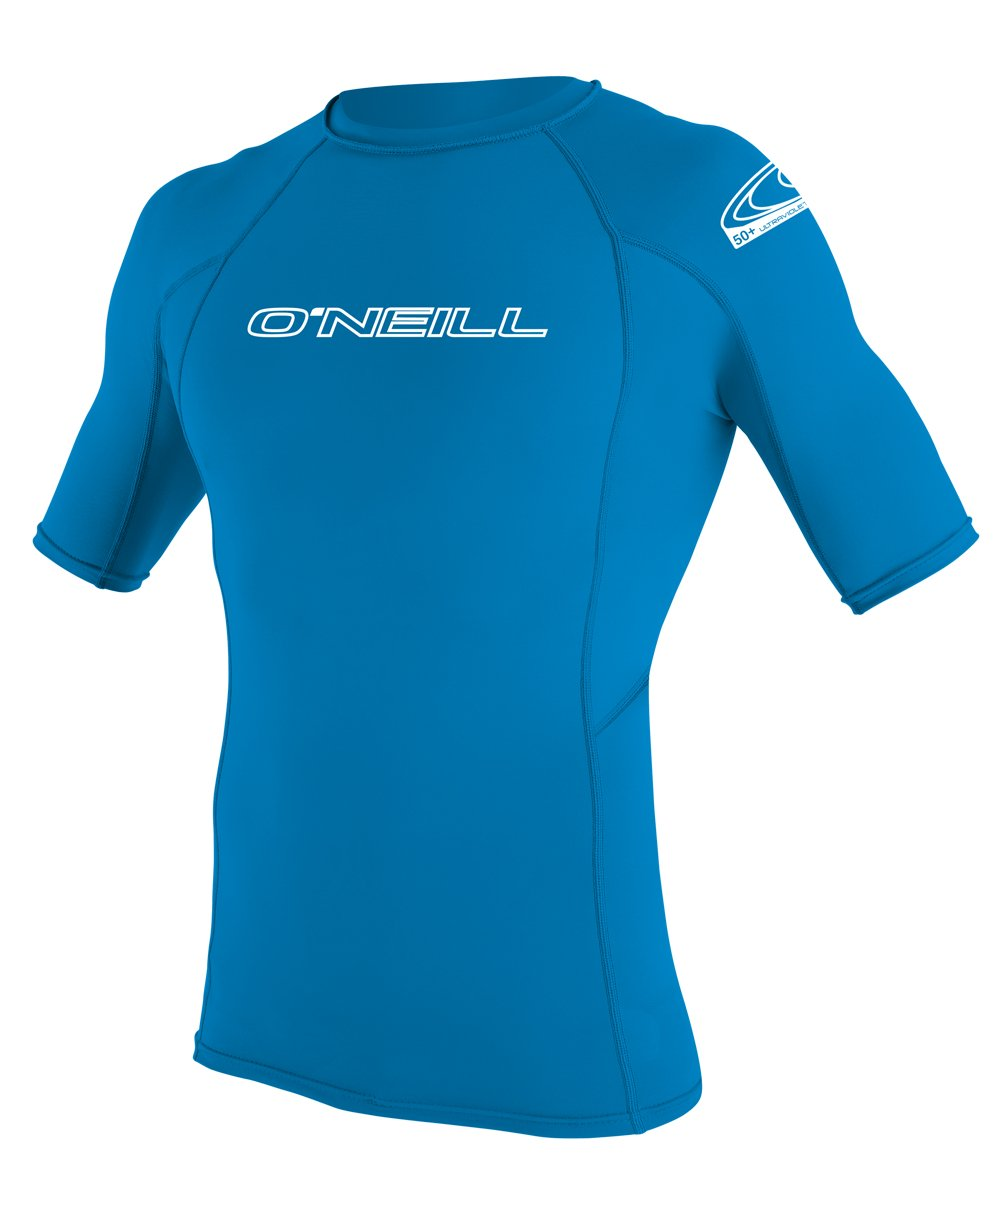 O'Neill Youth Basic Skins UPF 50+ Short Sleeve Rash Guard O' Neill 3345-009-10-P